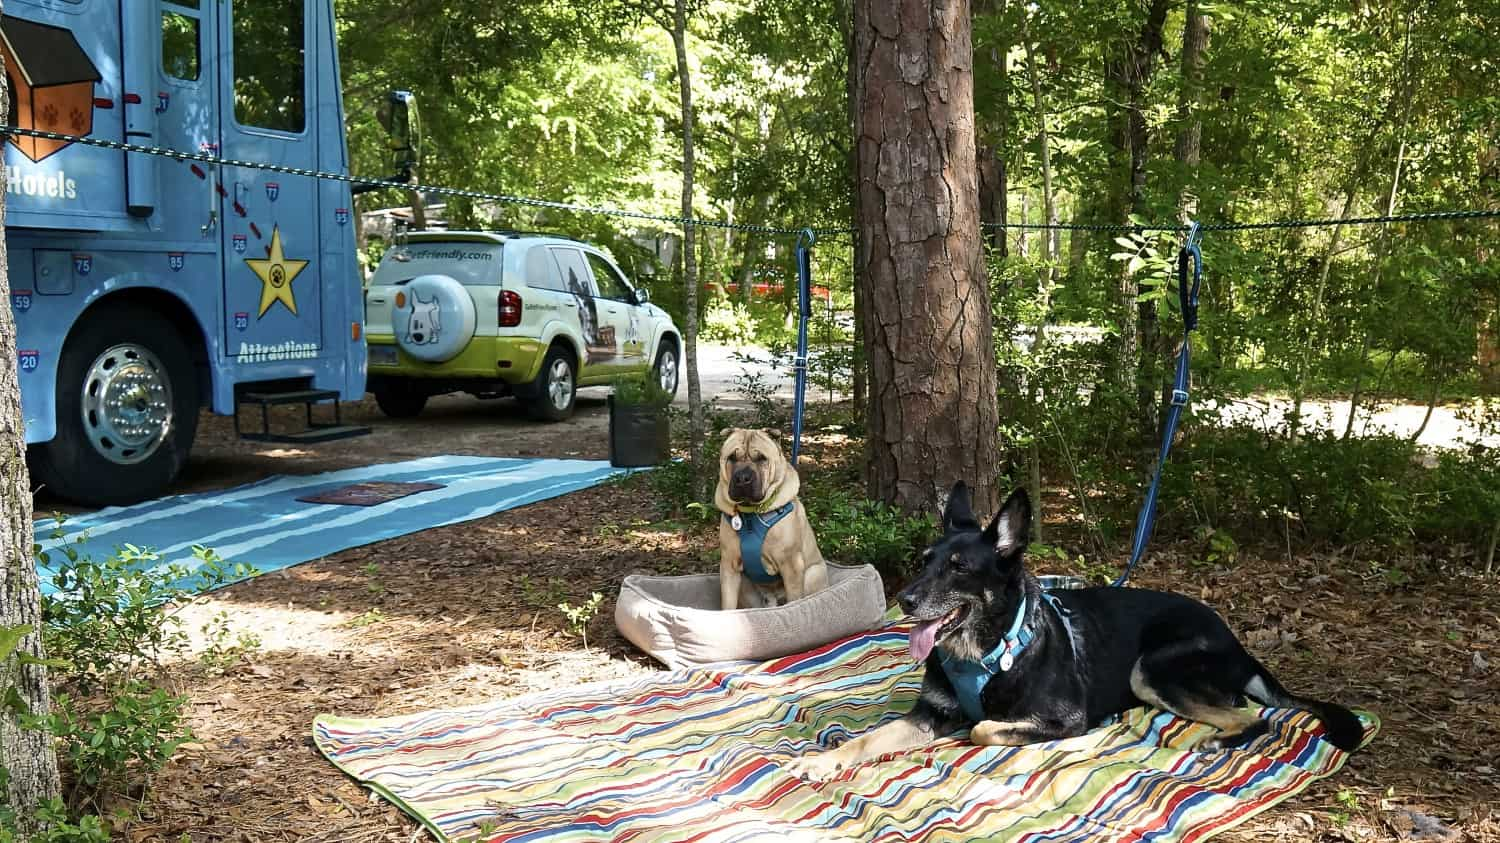 Ty the Shar-pei and Buster the German Shepherd lounging in a campsite on their zip line